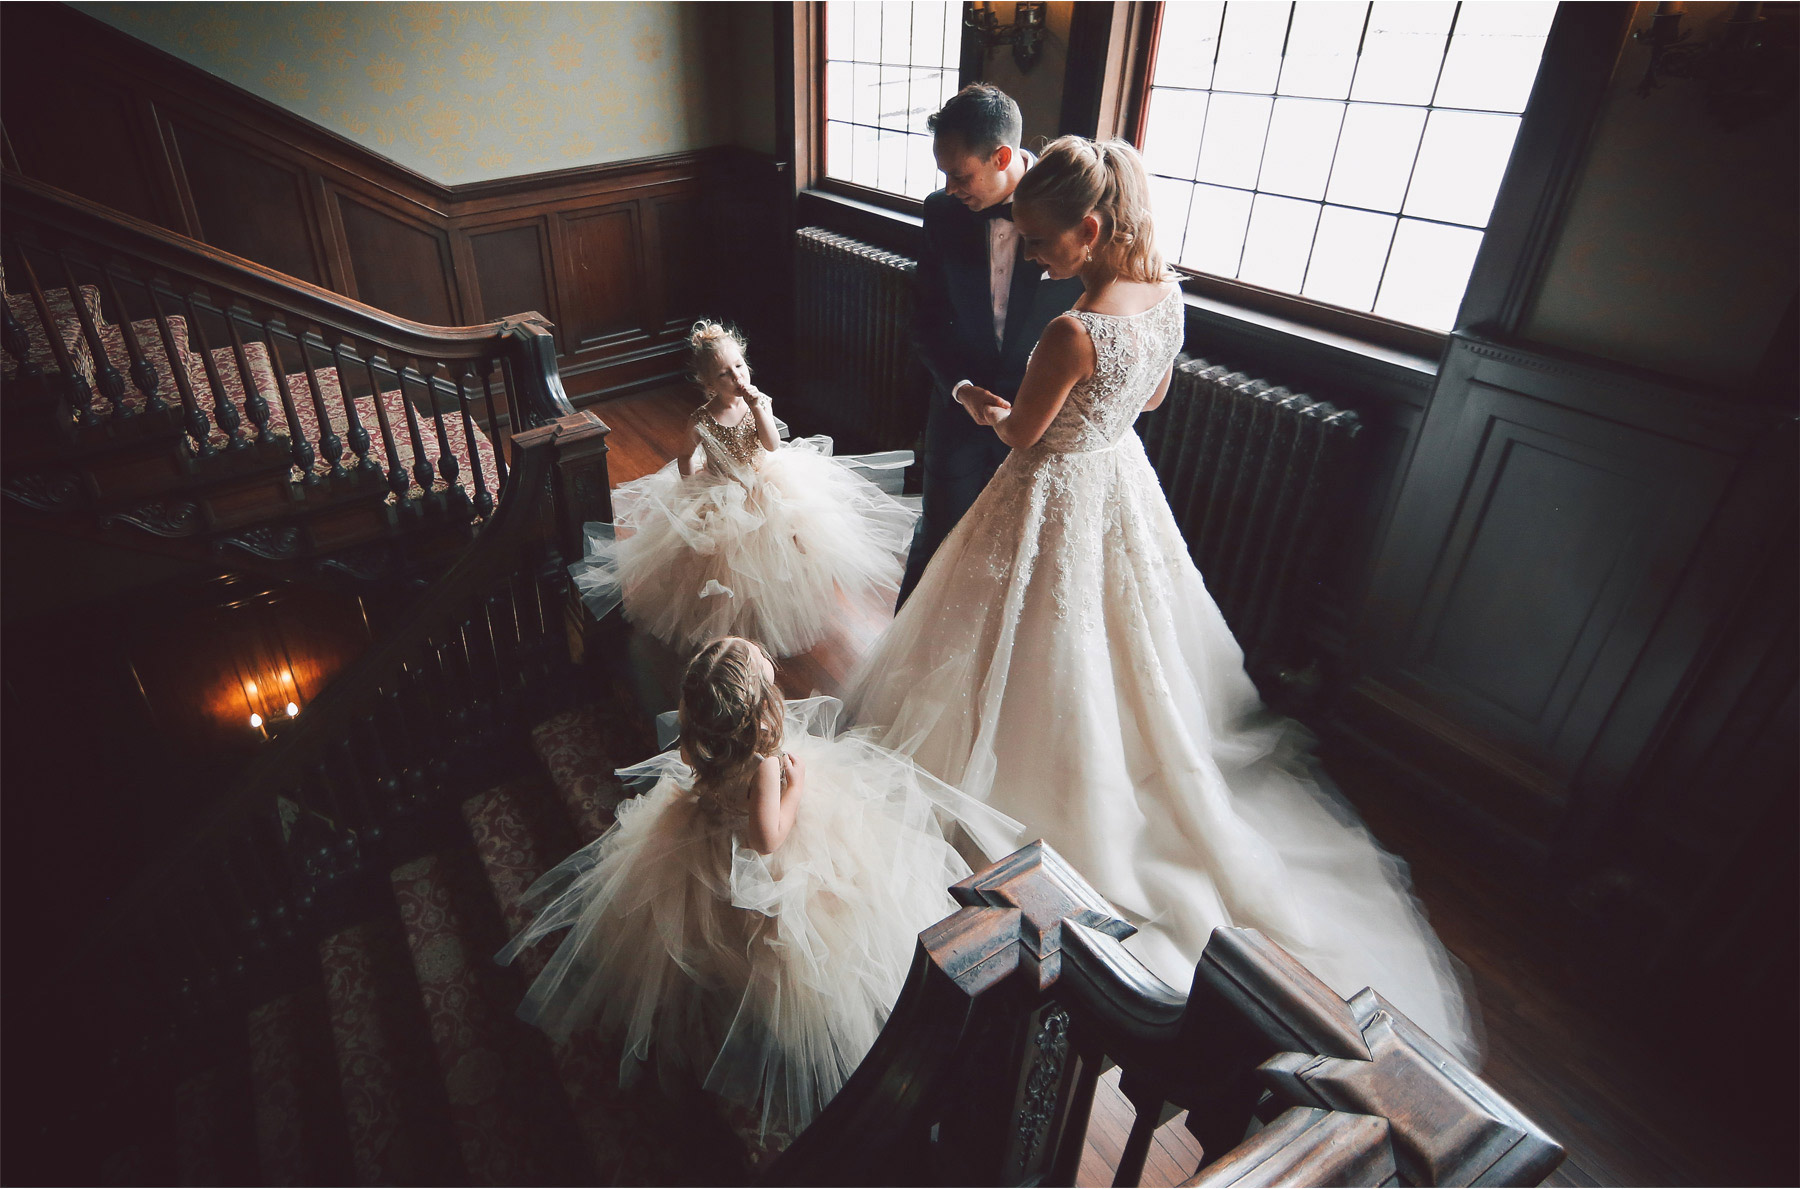 05-Minneapolis-Wedding-Photography-by-Vick-Semple-Mansion-Stairs-Flower-Girls-Abby-and-Jason.jpg